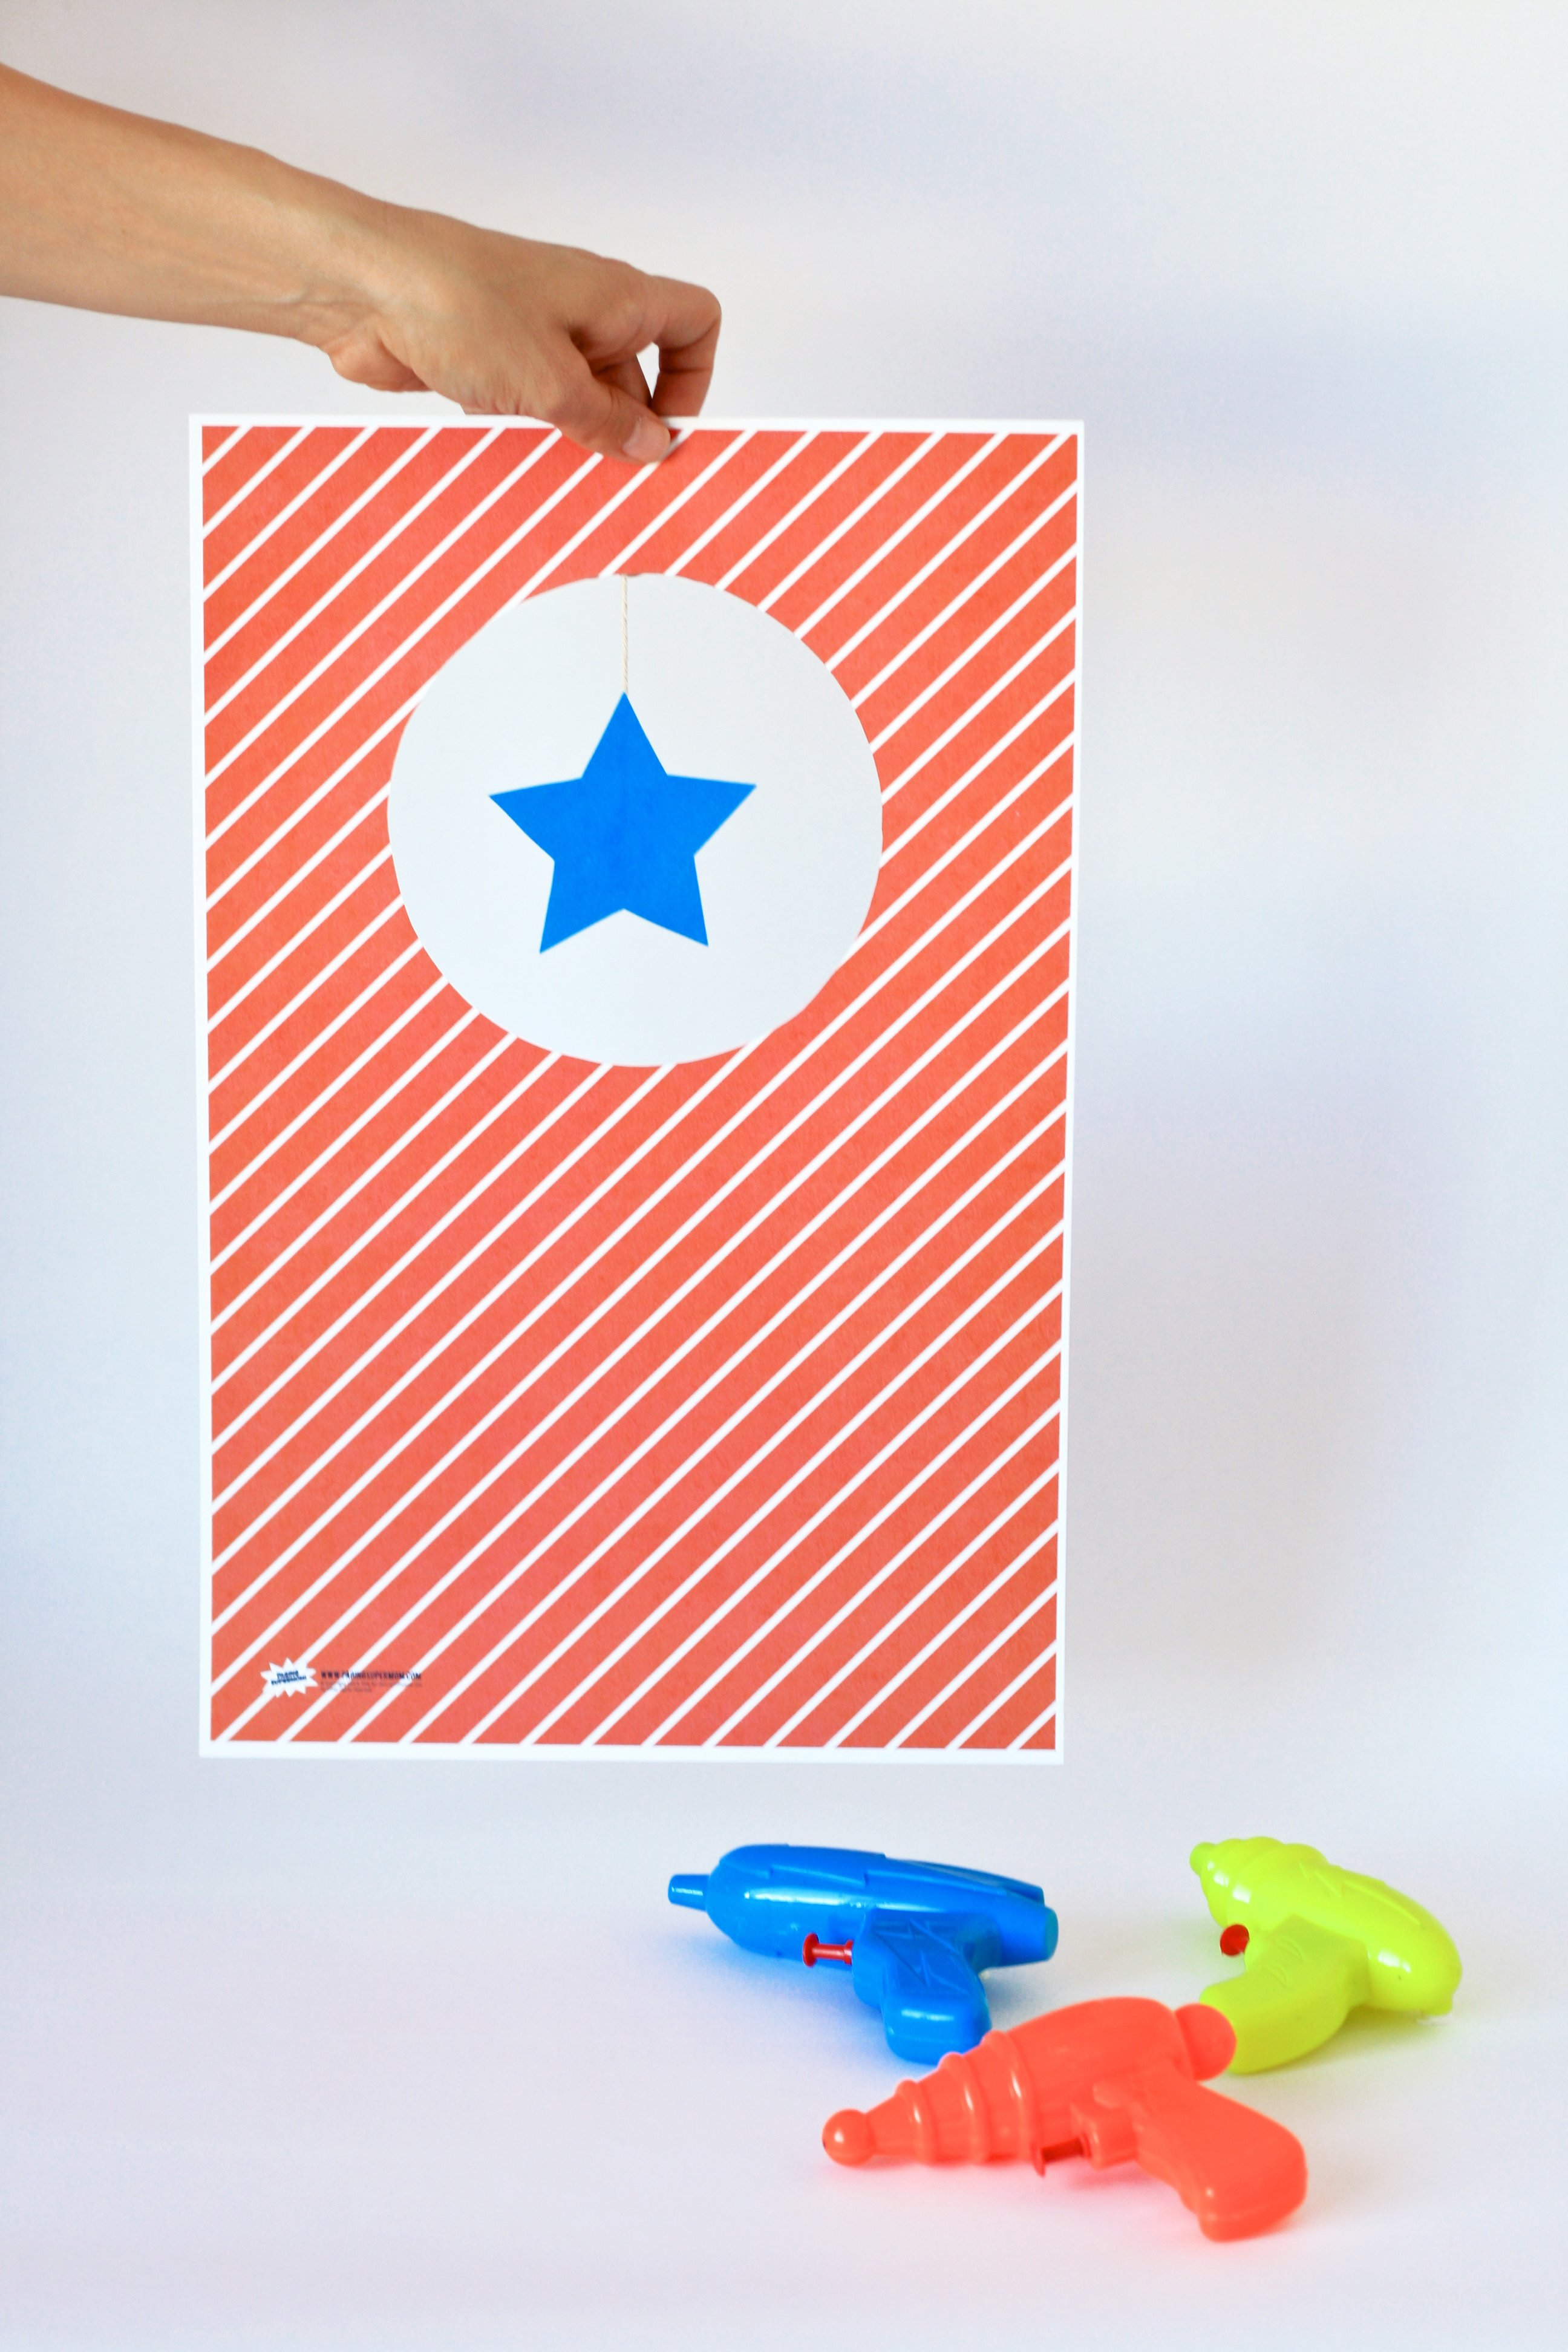 Summer Fun Ideas: Make Water Gun Targets - download the FREE printable template @PagingSupermom